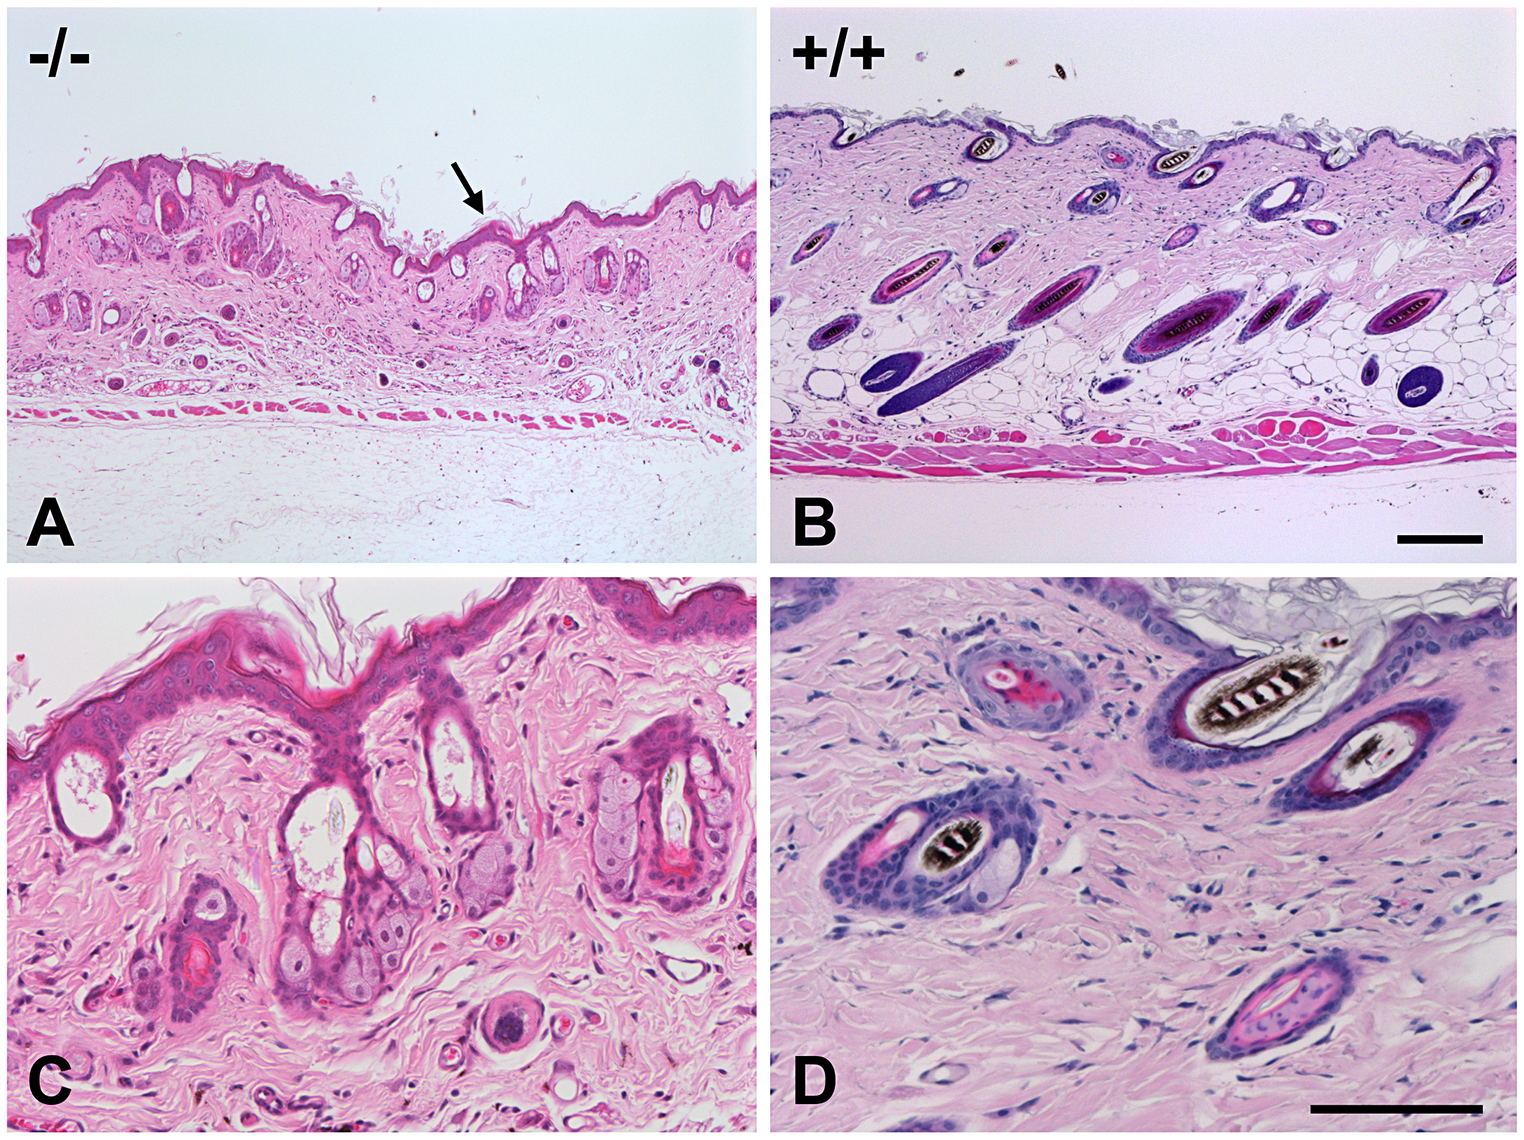 Skin histopathology of the affected mice.